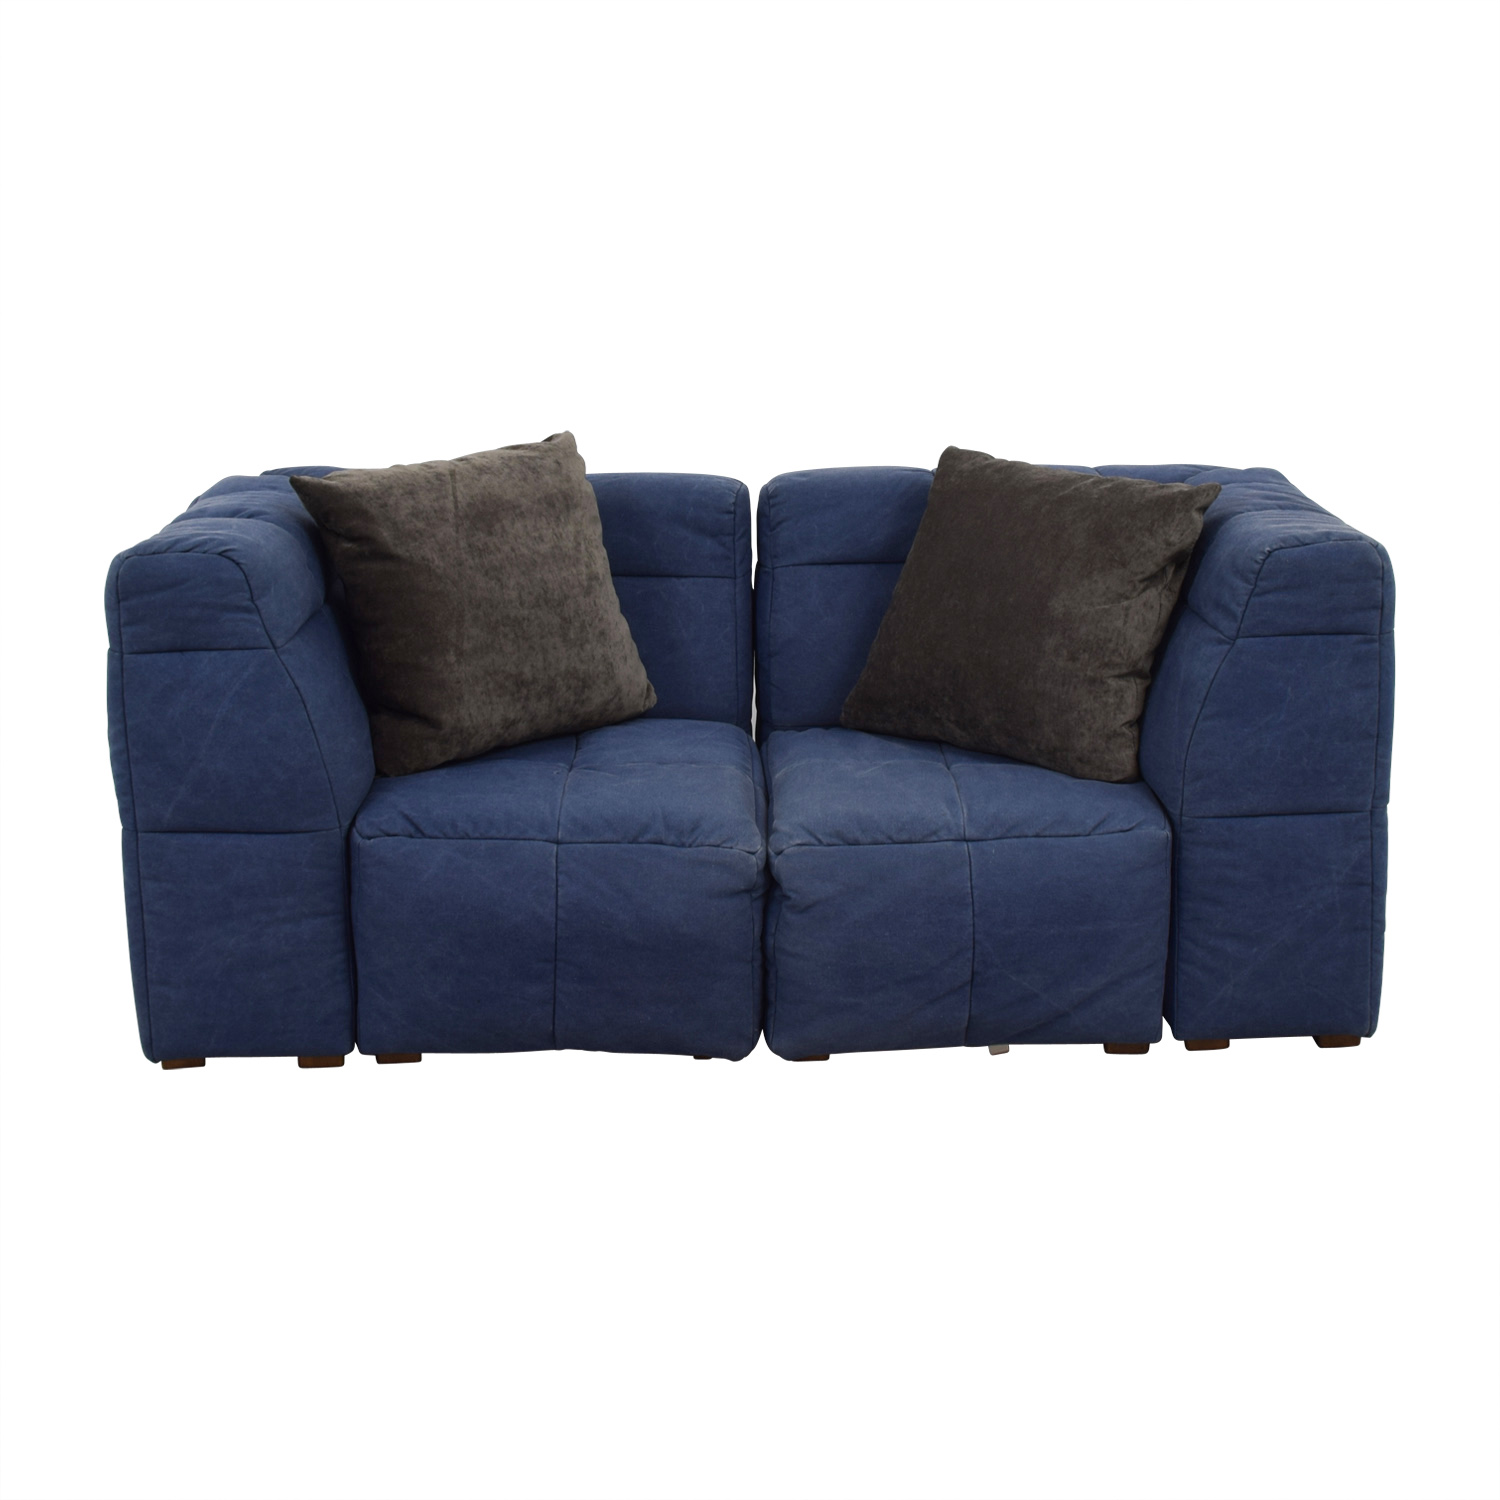 Pottery Barn Blue Corner Piece Loveseat / Sofas